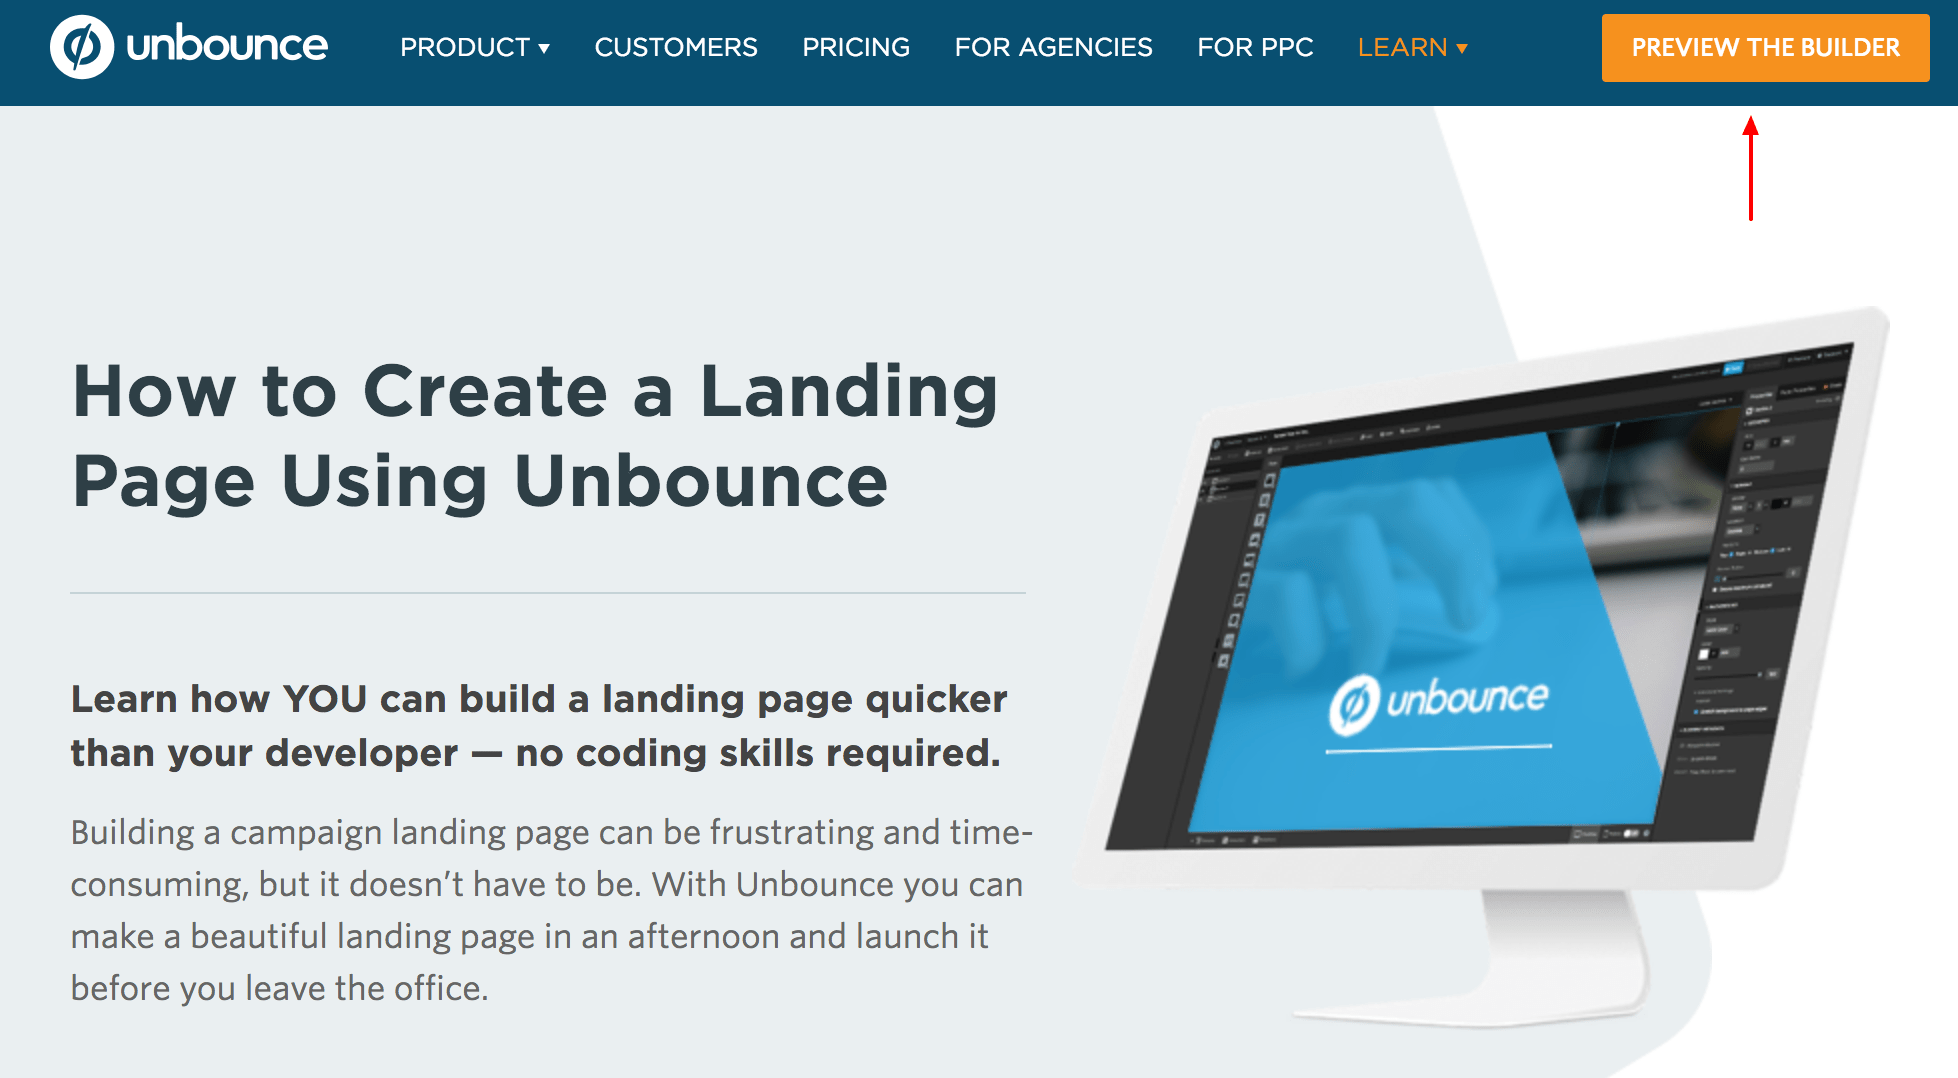 how to create a landing page - saas product marketing